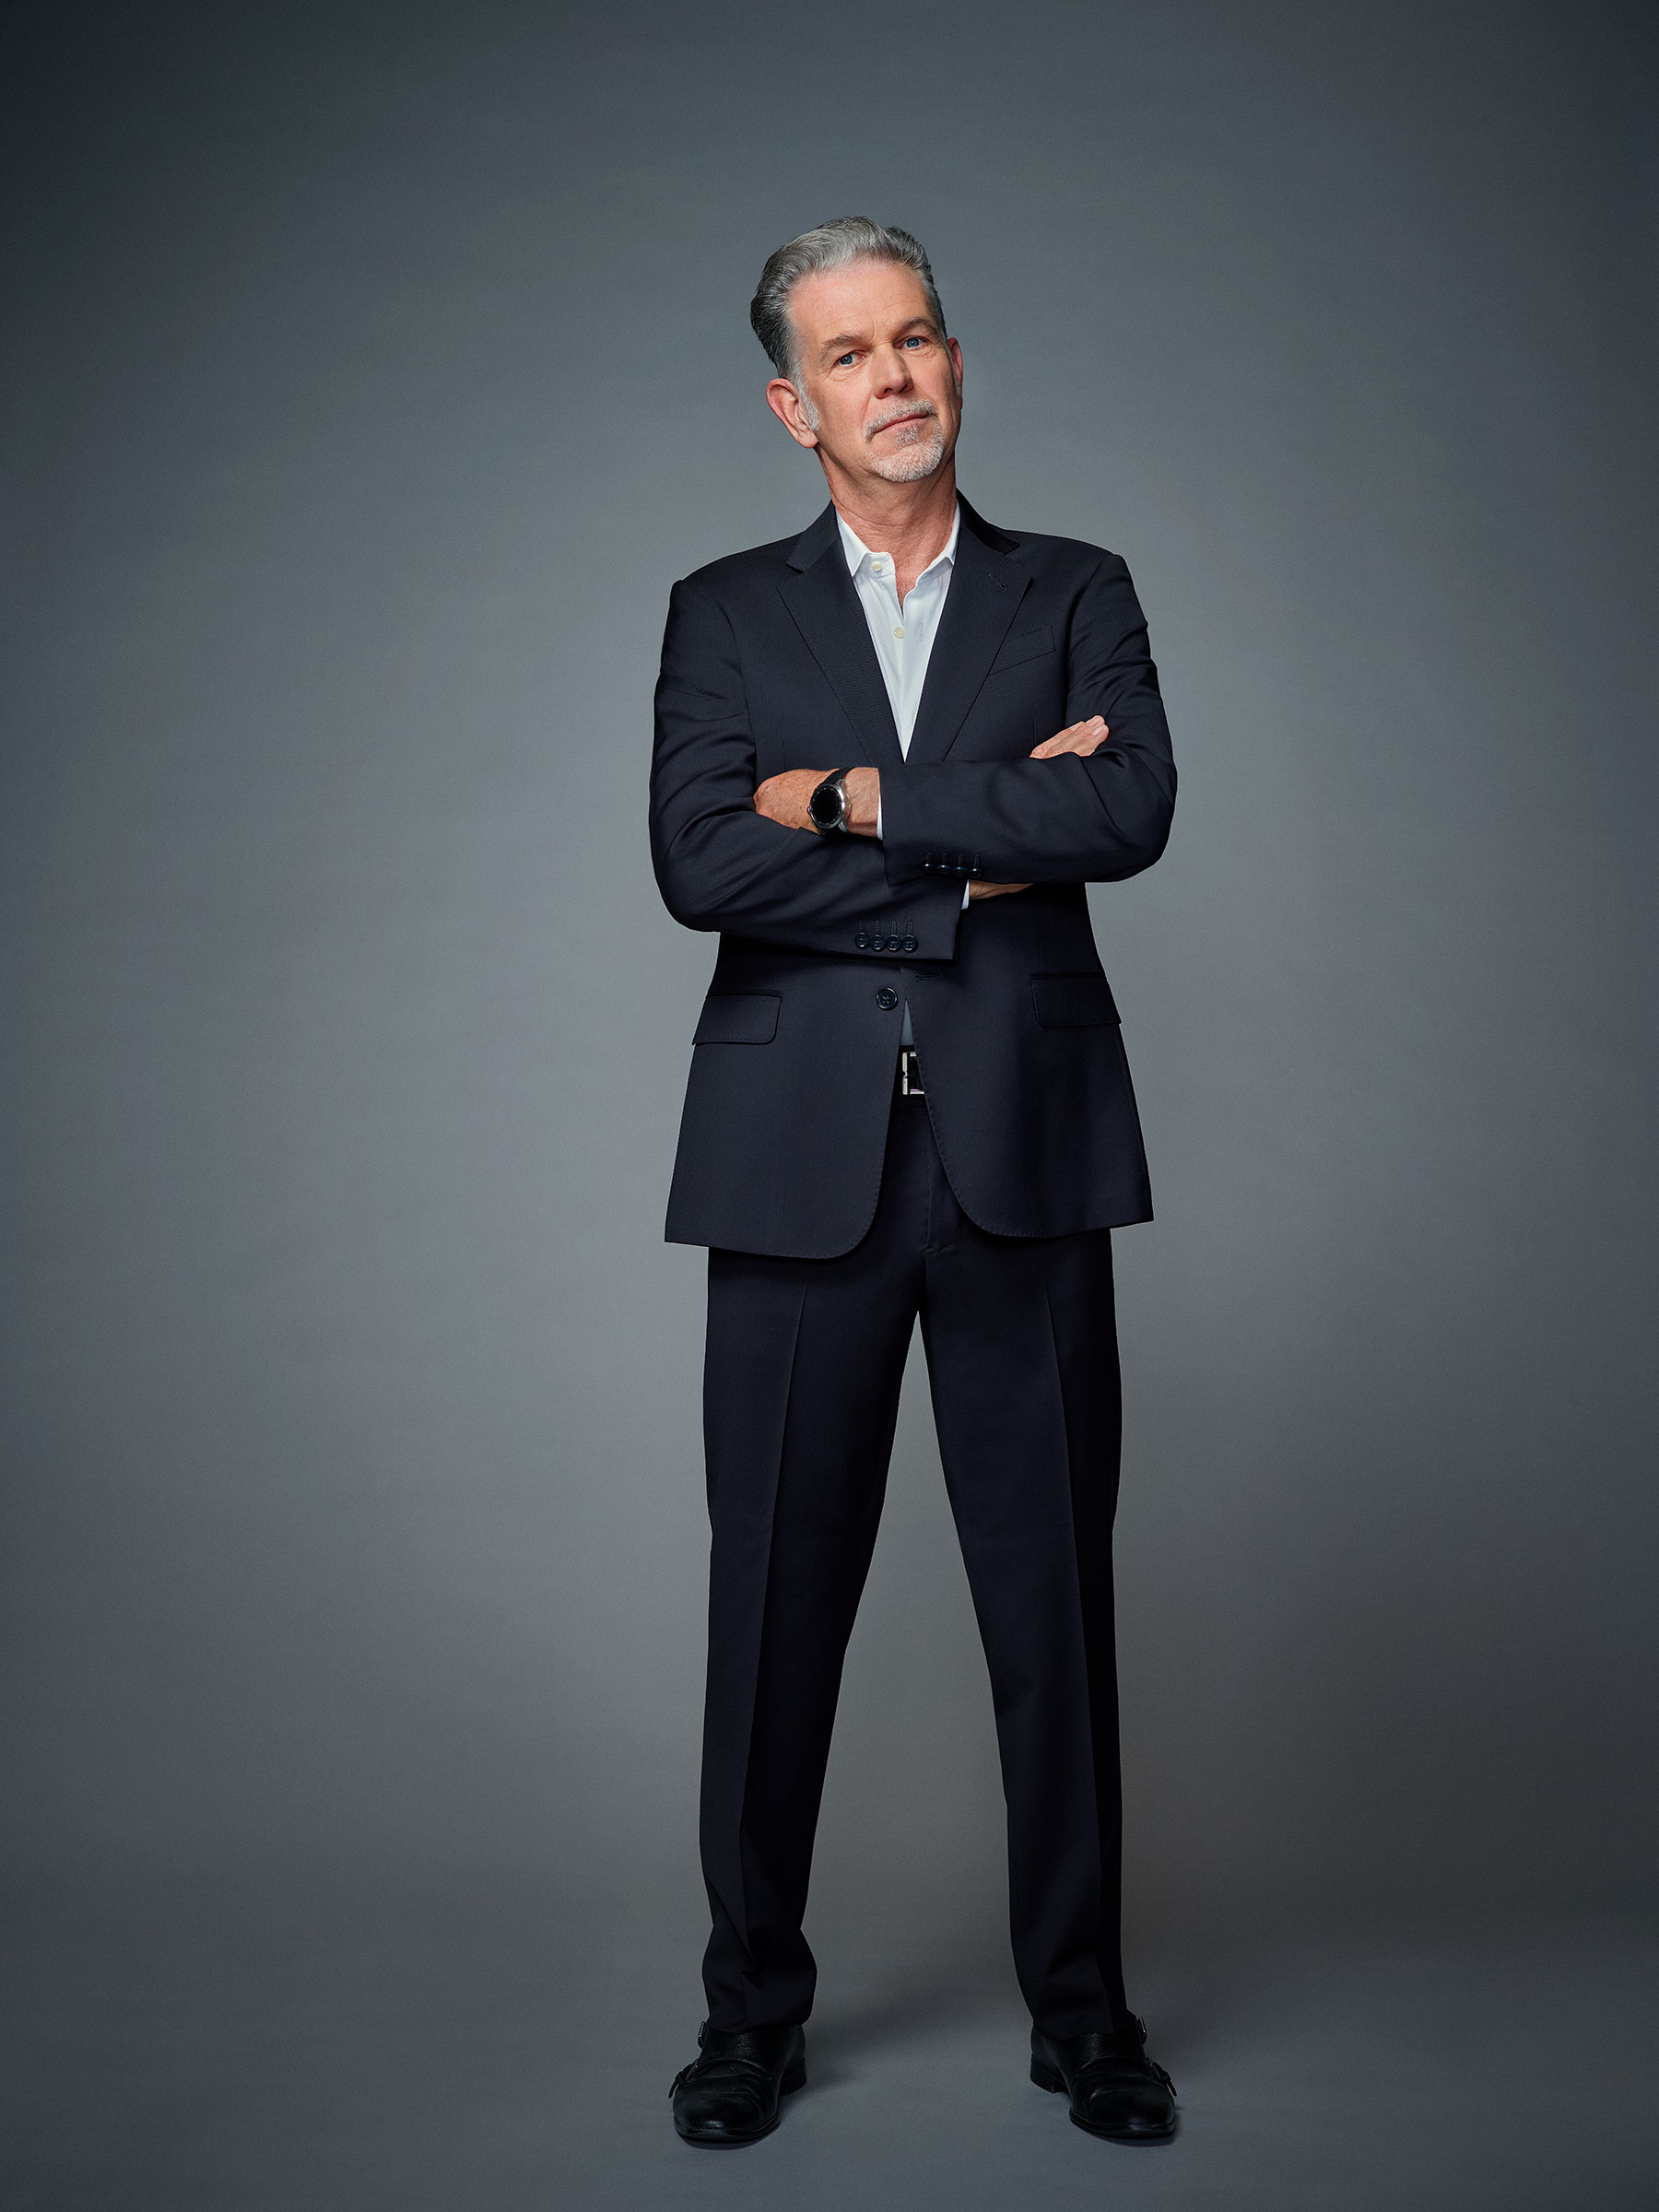 Reed Hastings, co-CEO of Netflix